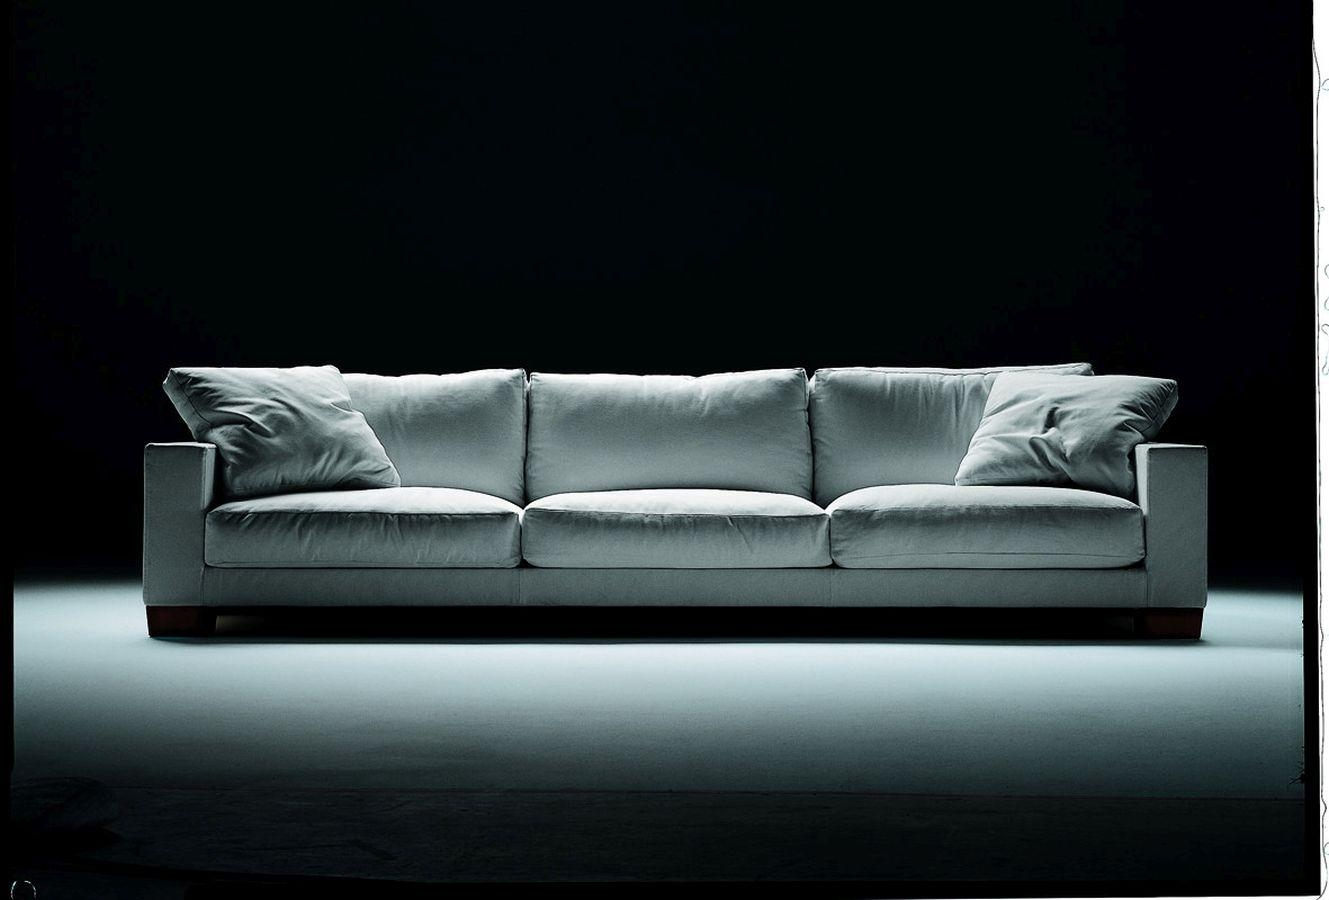 Product Categories Sofas / Sectional Sofas | Flexform Nyc Within Flexform Sofas (View 2 of 20)